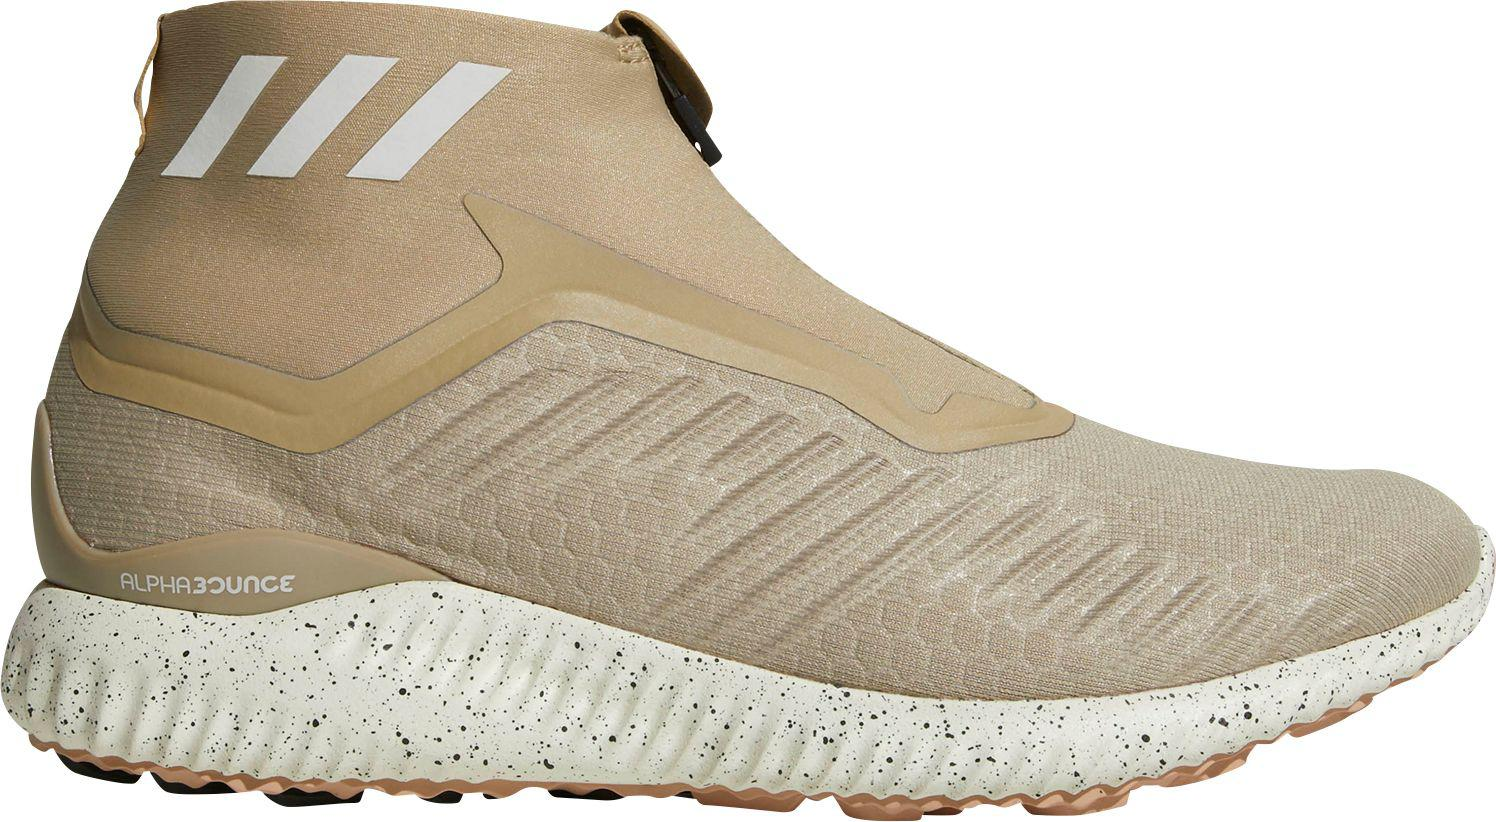 super popular 1c05b 4a807 Lyst - adidas Alphabounce Zip Running Shoes in Brown for Men